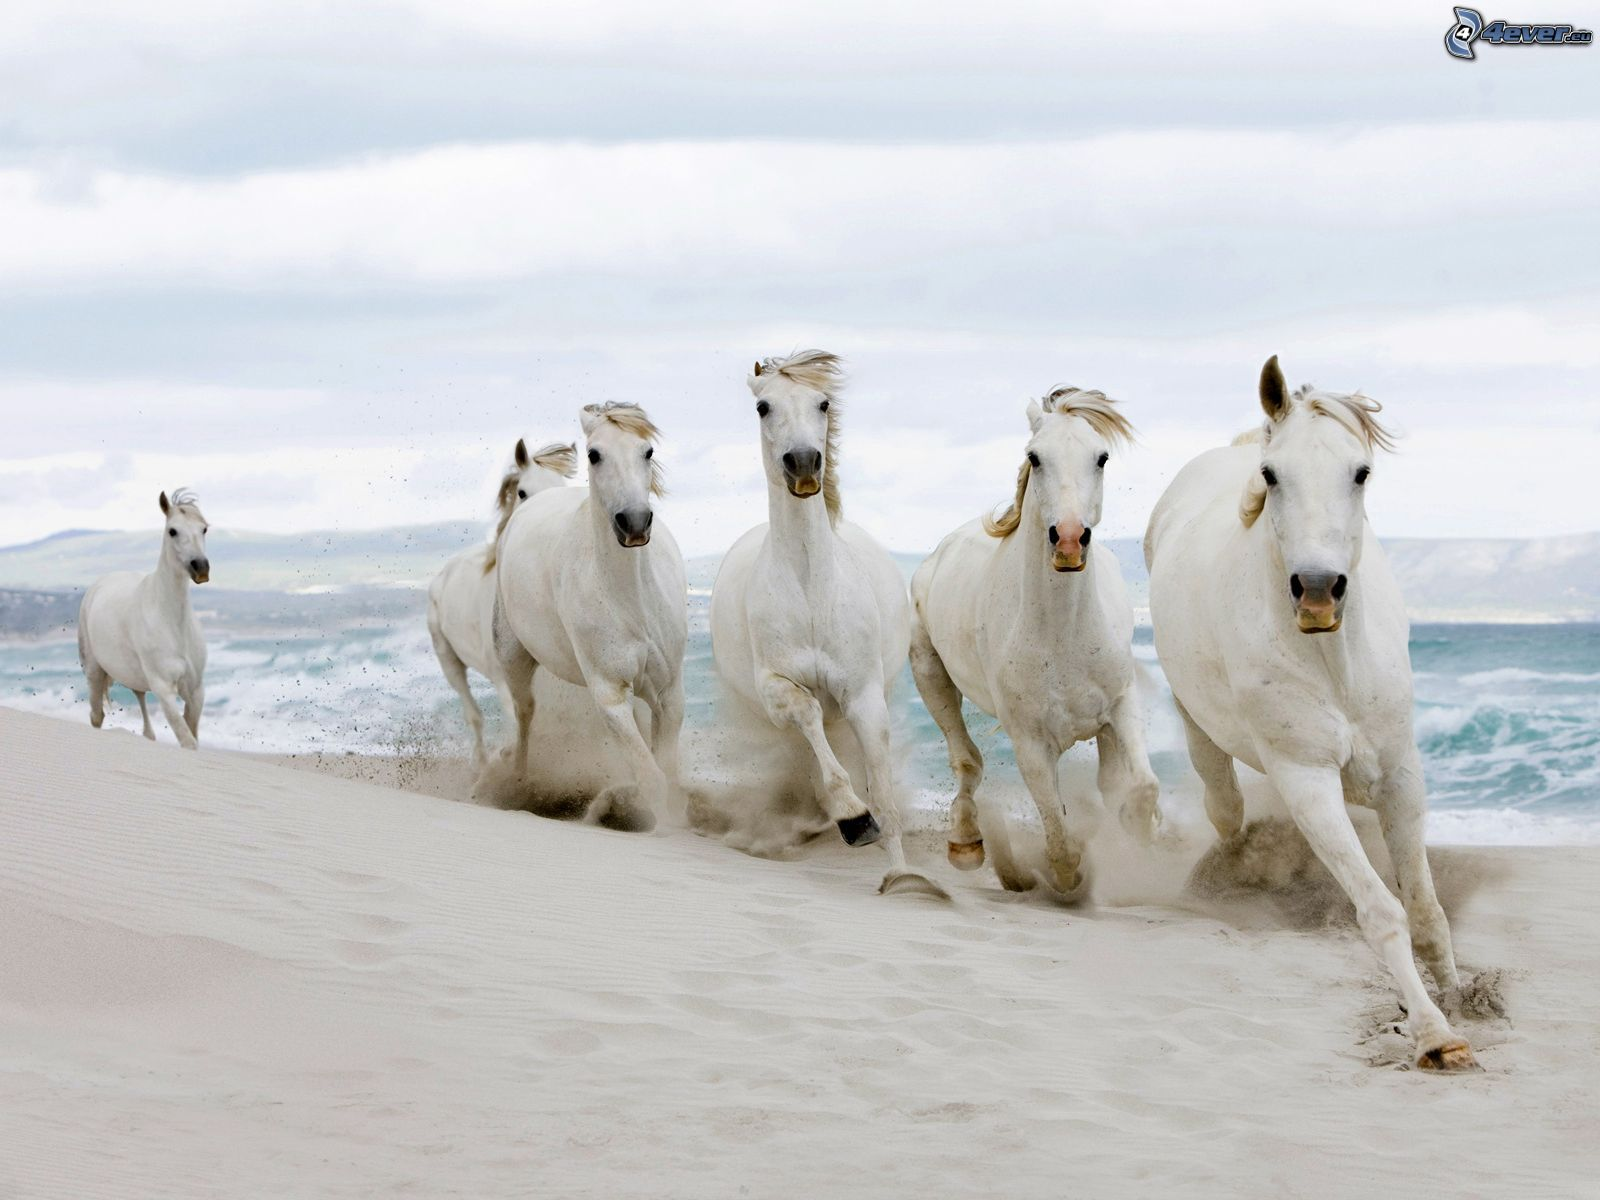 Horses on the beach horses on the beach white horses sea sciox Images